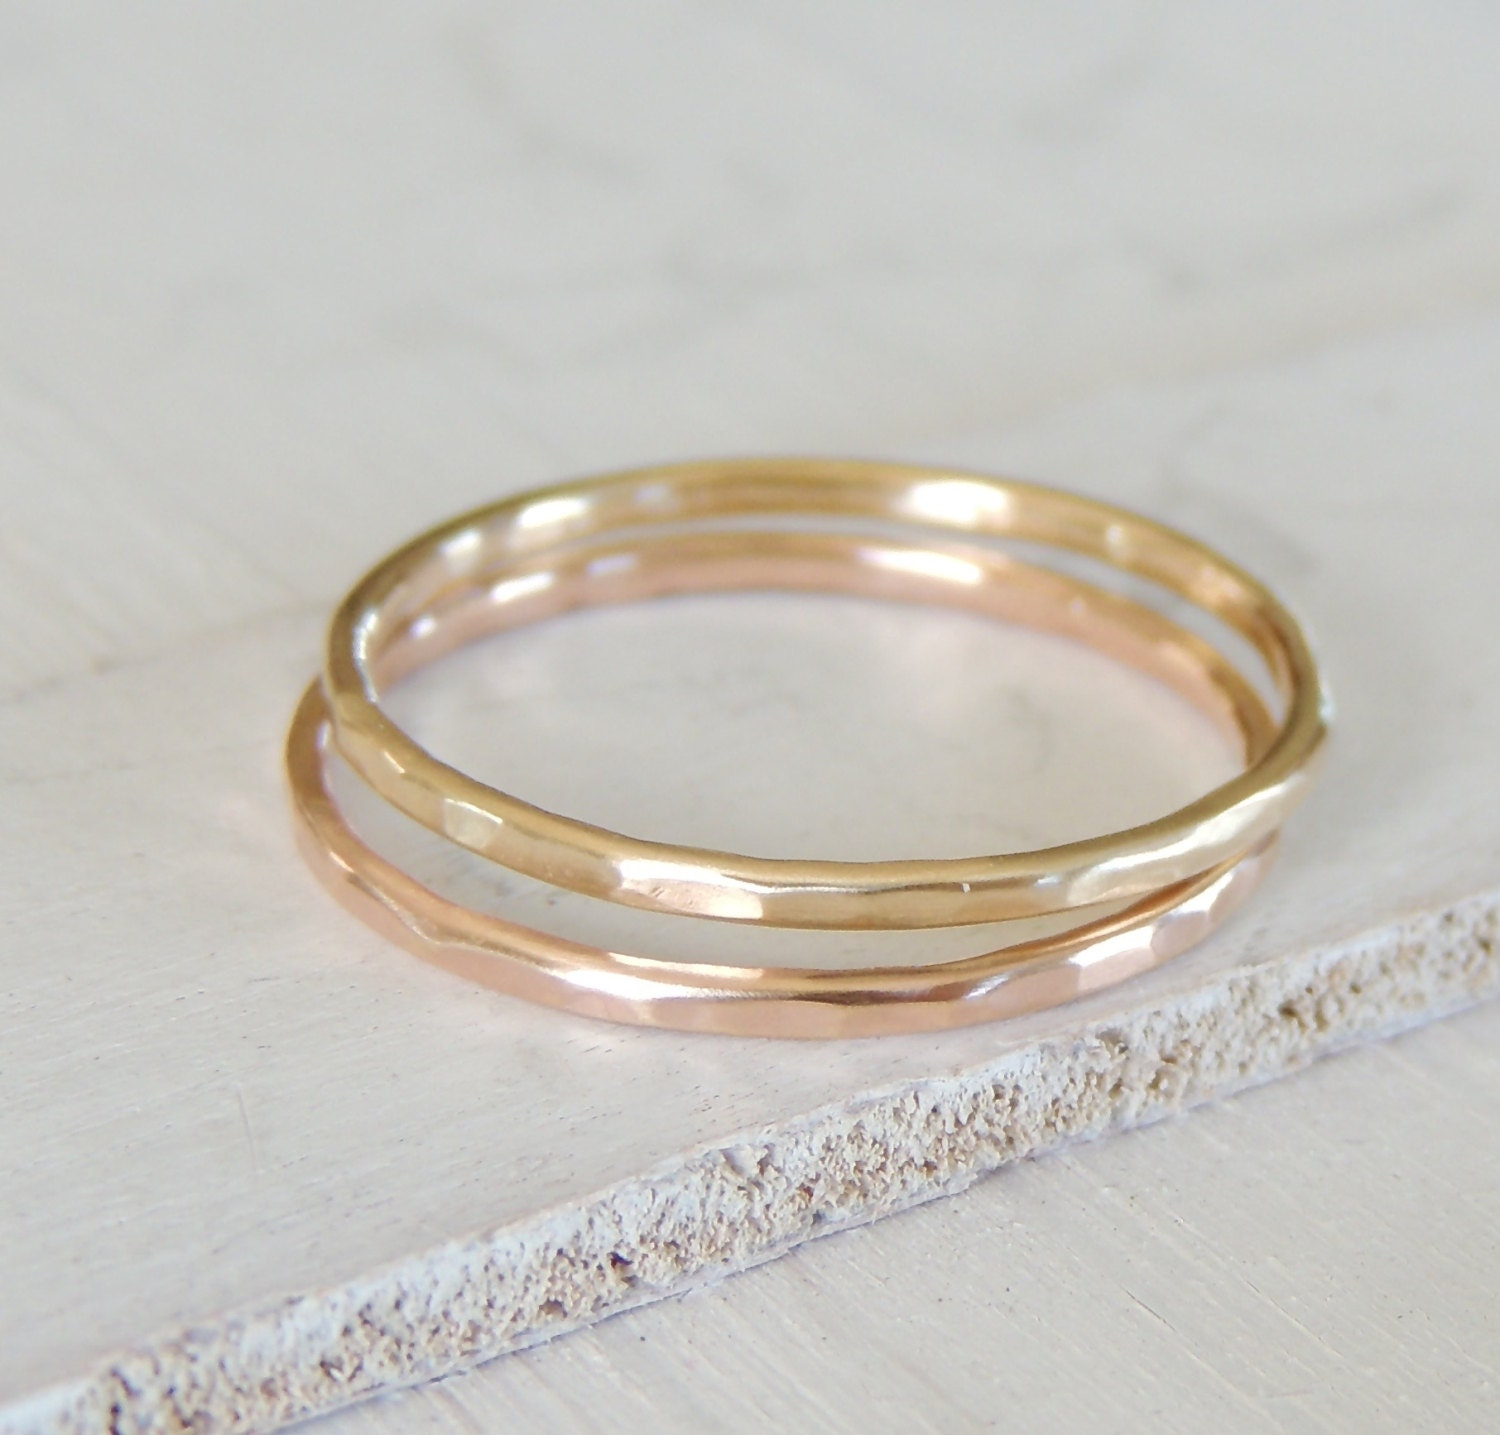 Simple Wedding Ring Wedding Band 14k Yellow Gold Ring by Luxuring